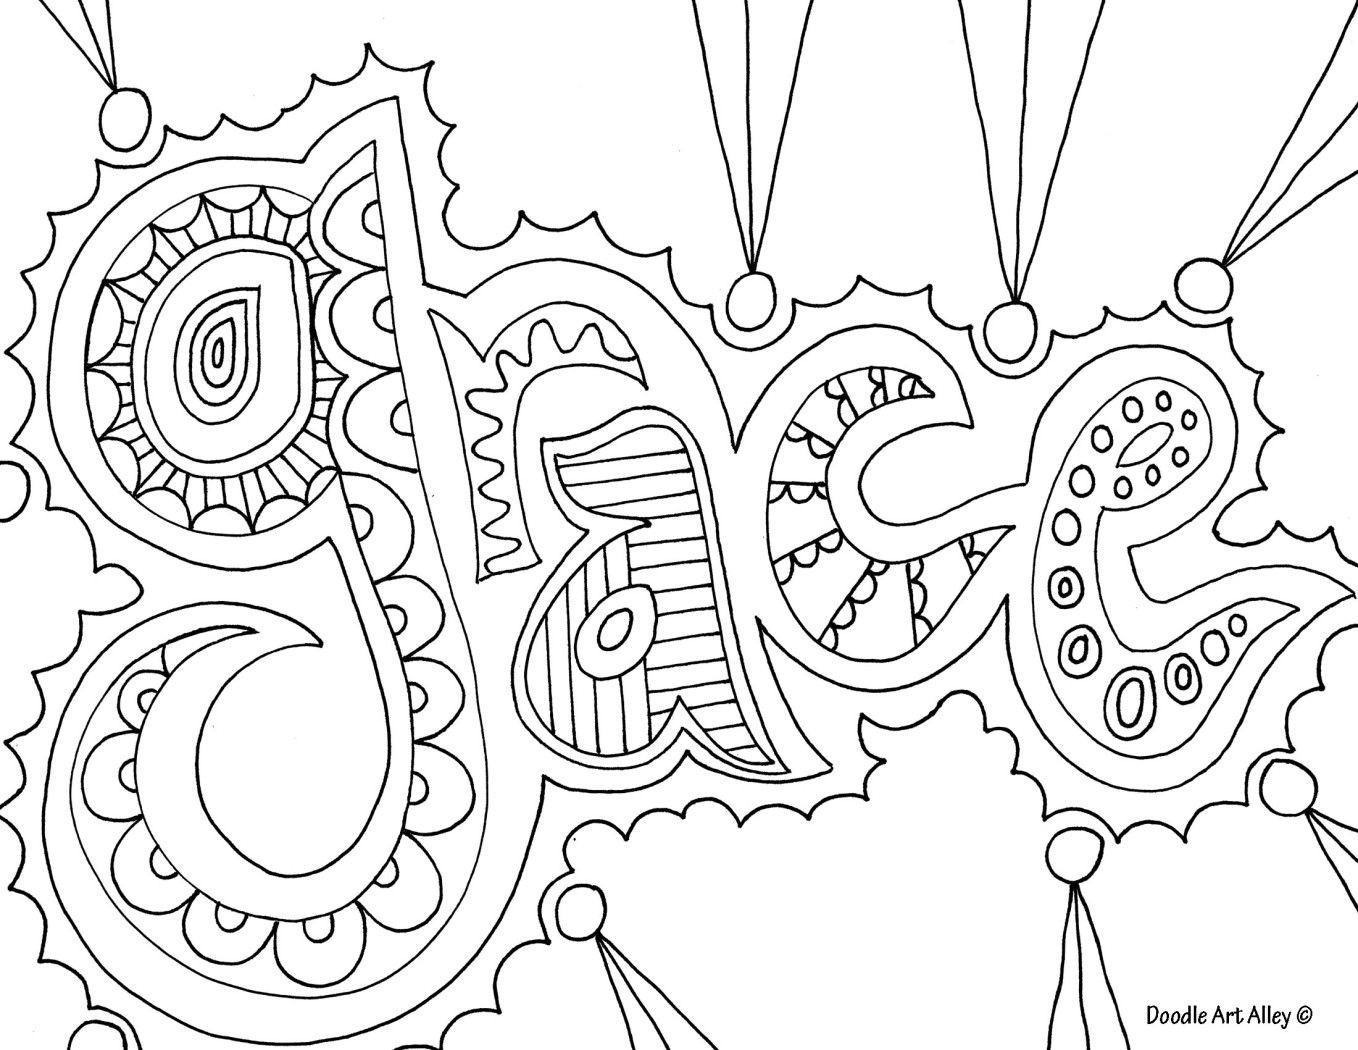 Christian Printable Coloring Sheets For Girls  Doodle art grace nice coloring page for older kids